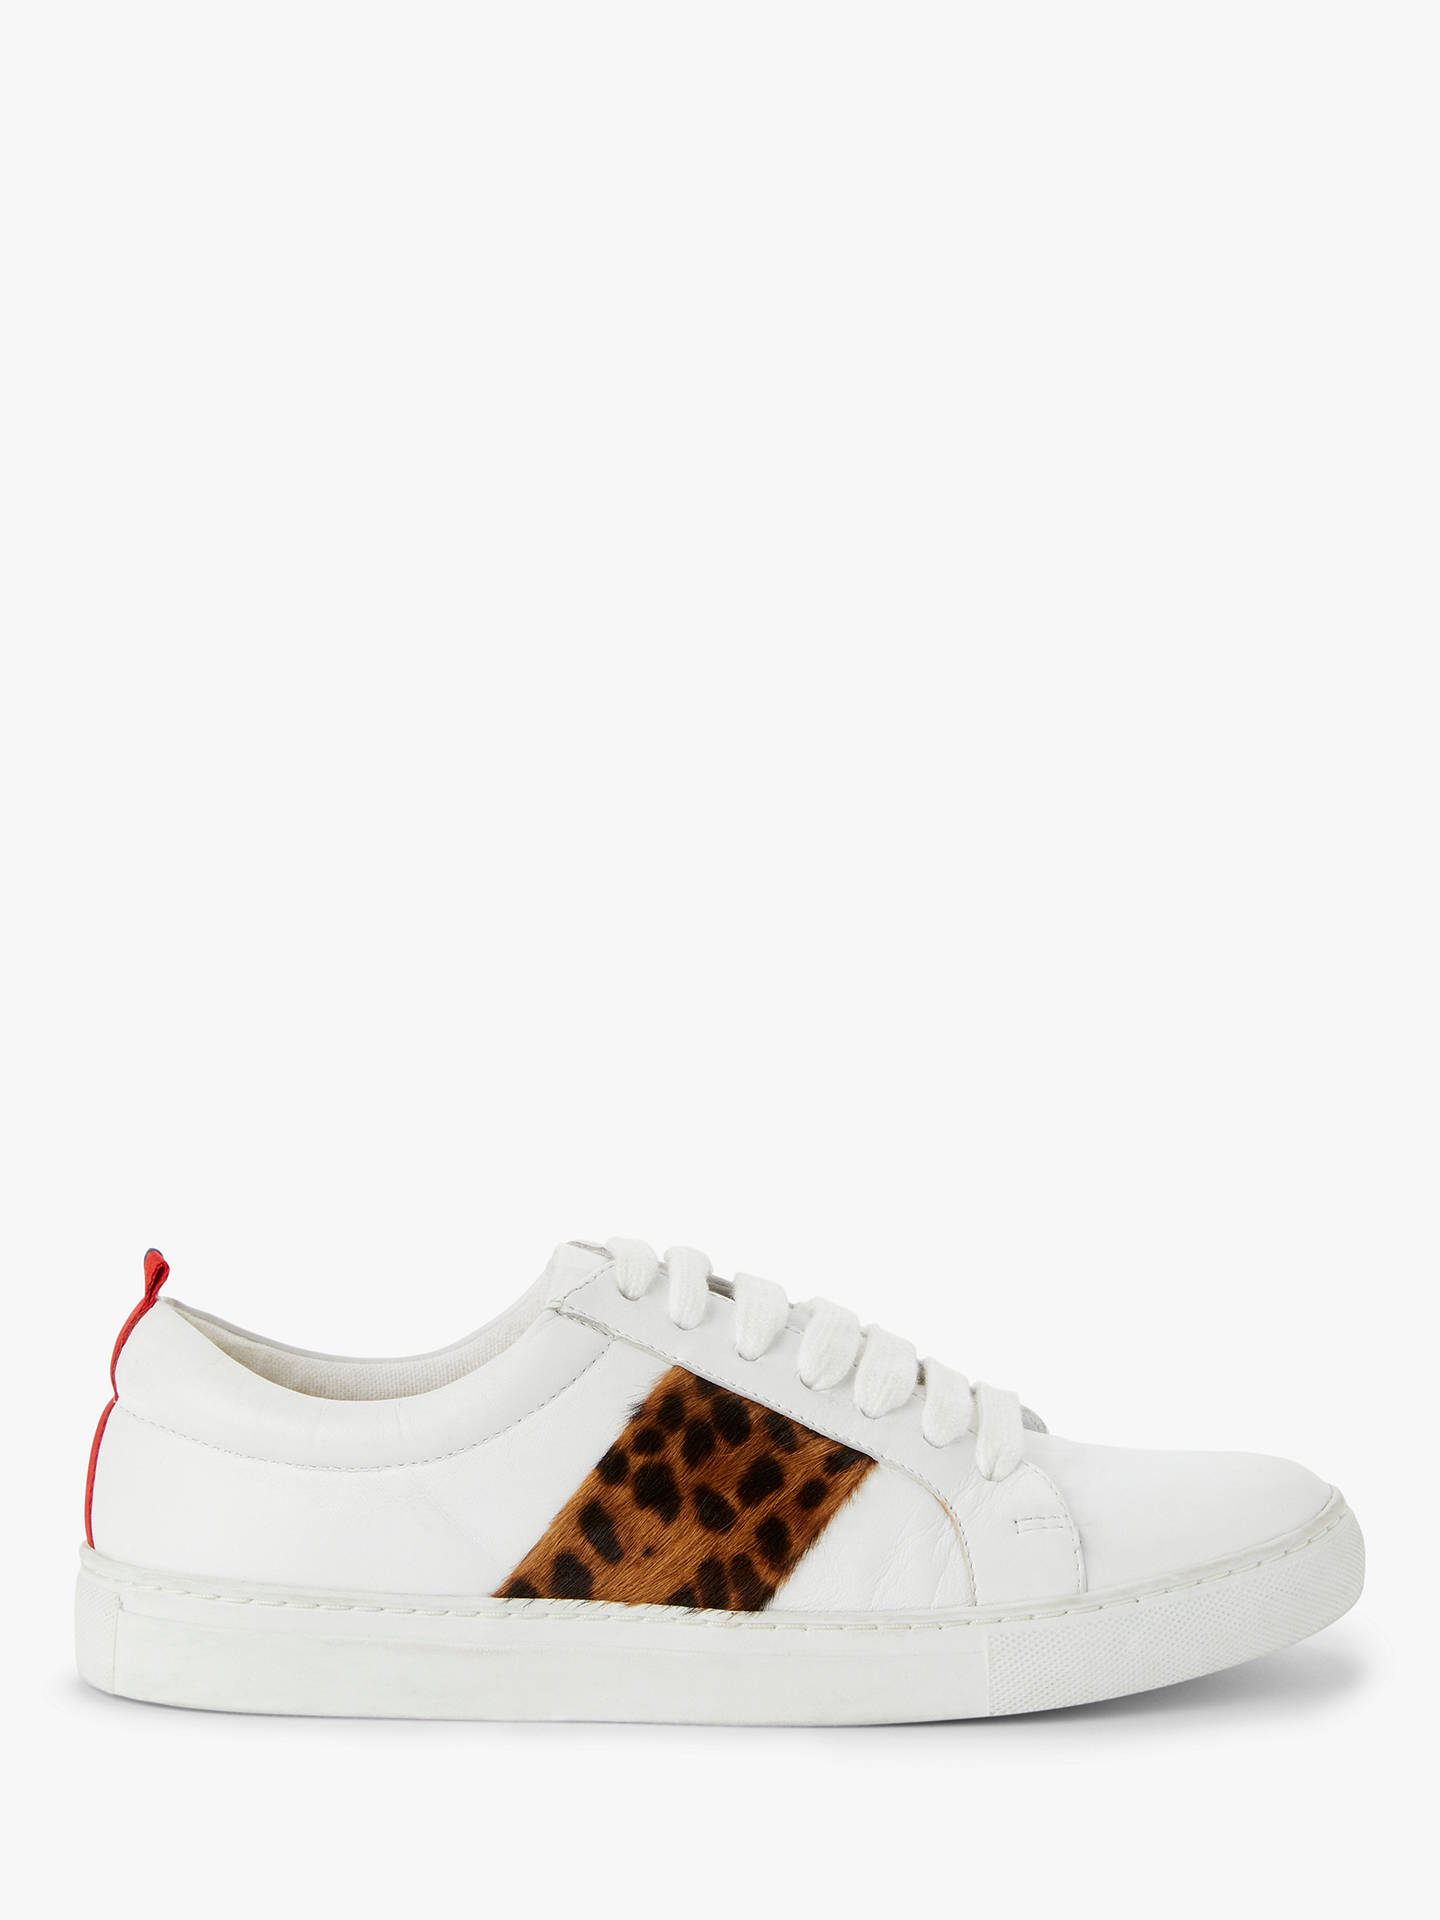 BuyBoden Classic Trainers, Tan Leopard Leather, 4 Online at johnlewis.com